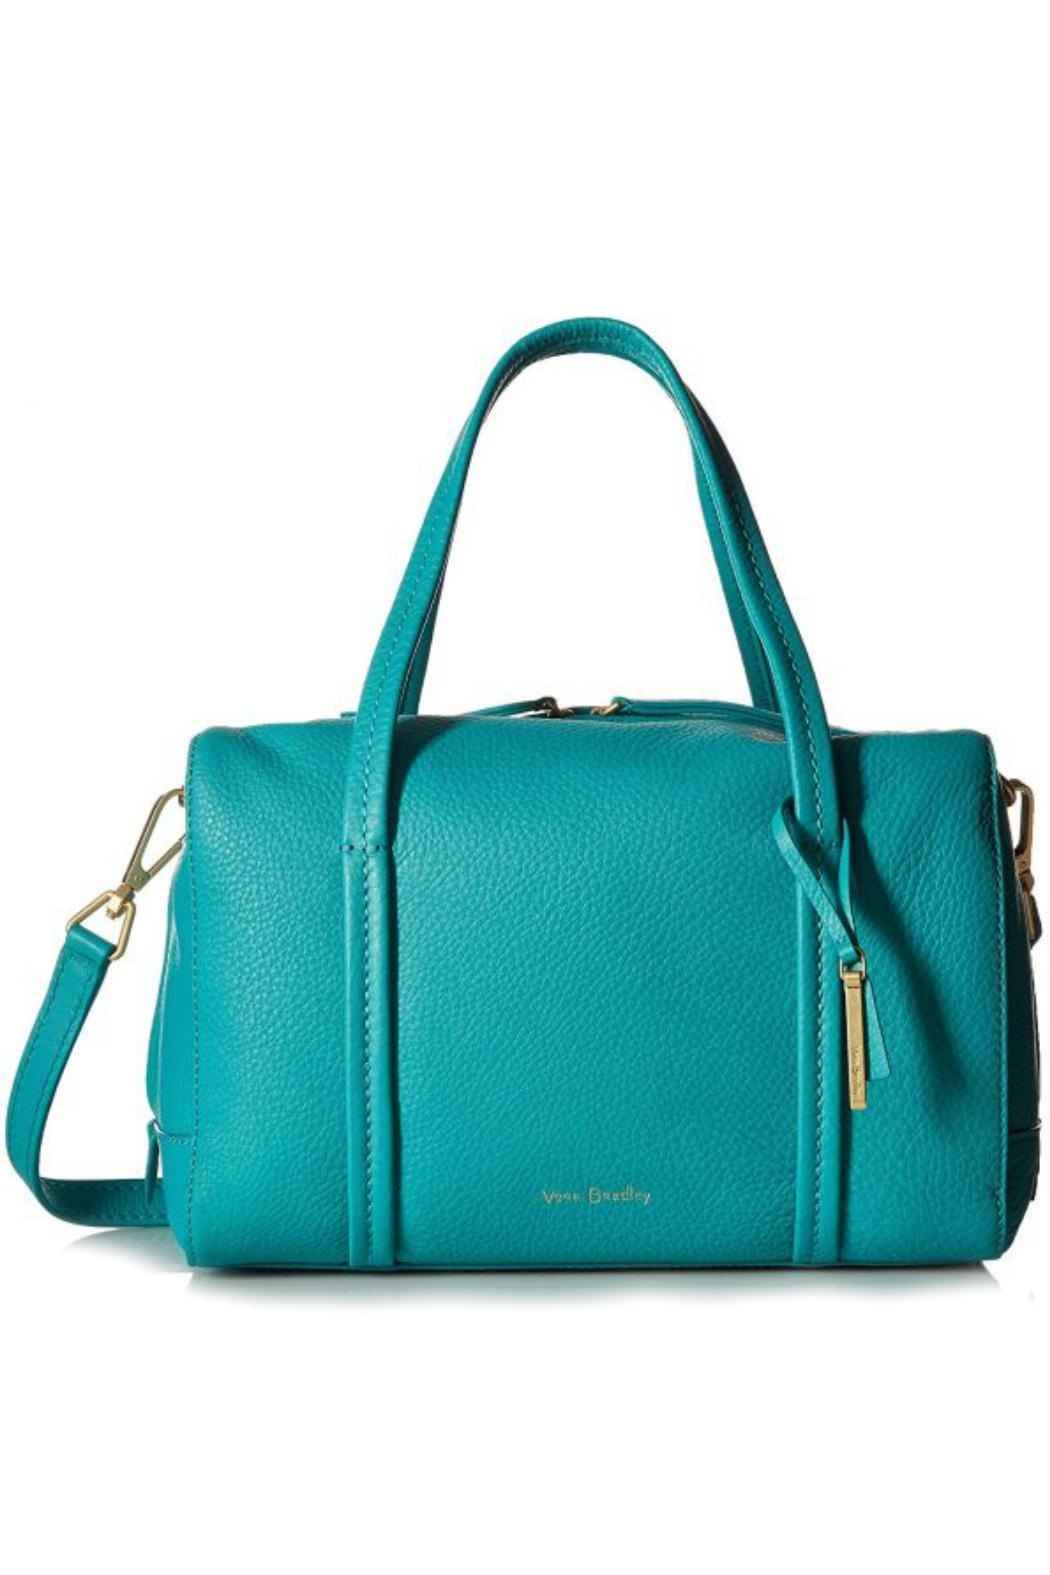 Vera Bradley Turquoise Sea Leather - Main Image